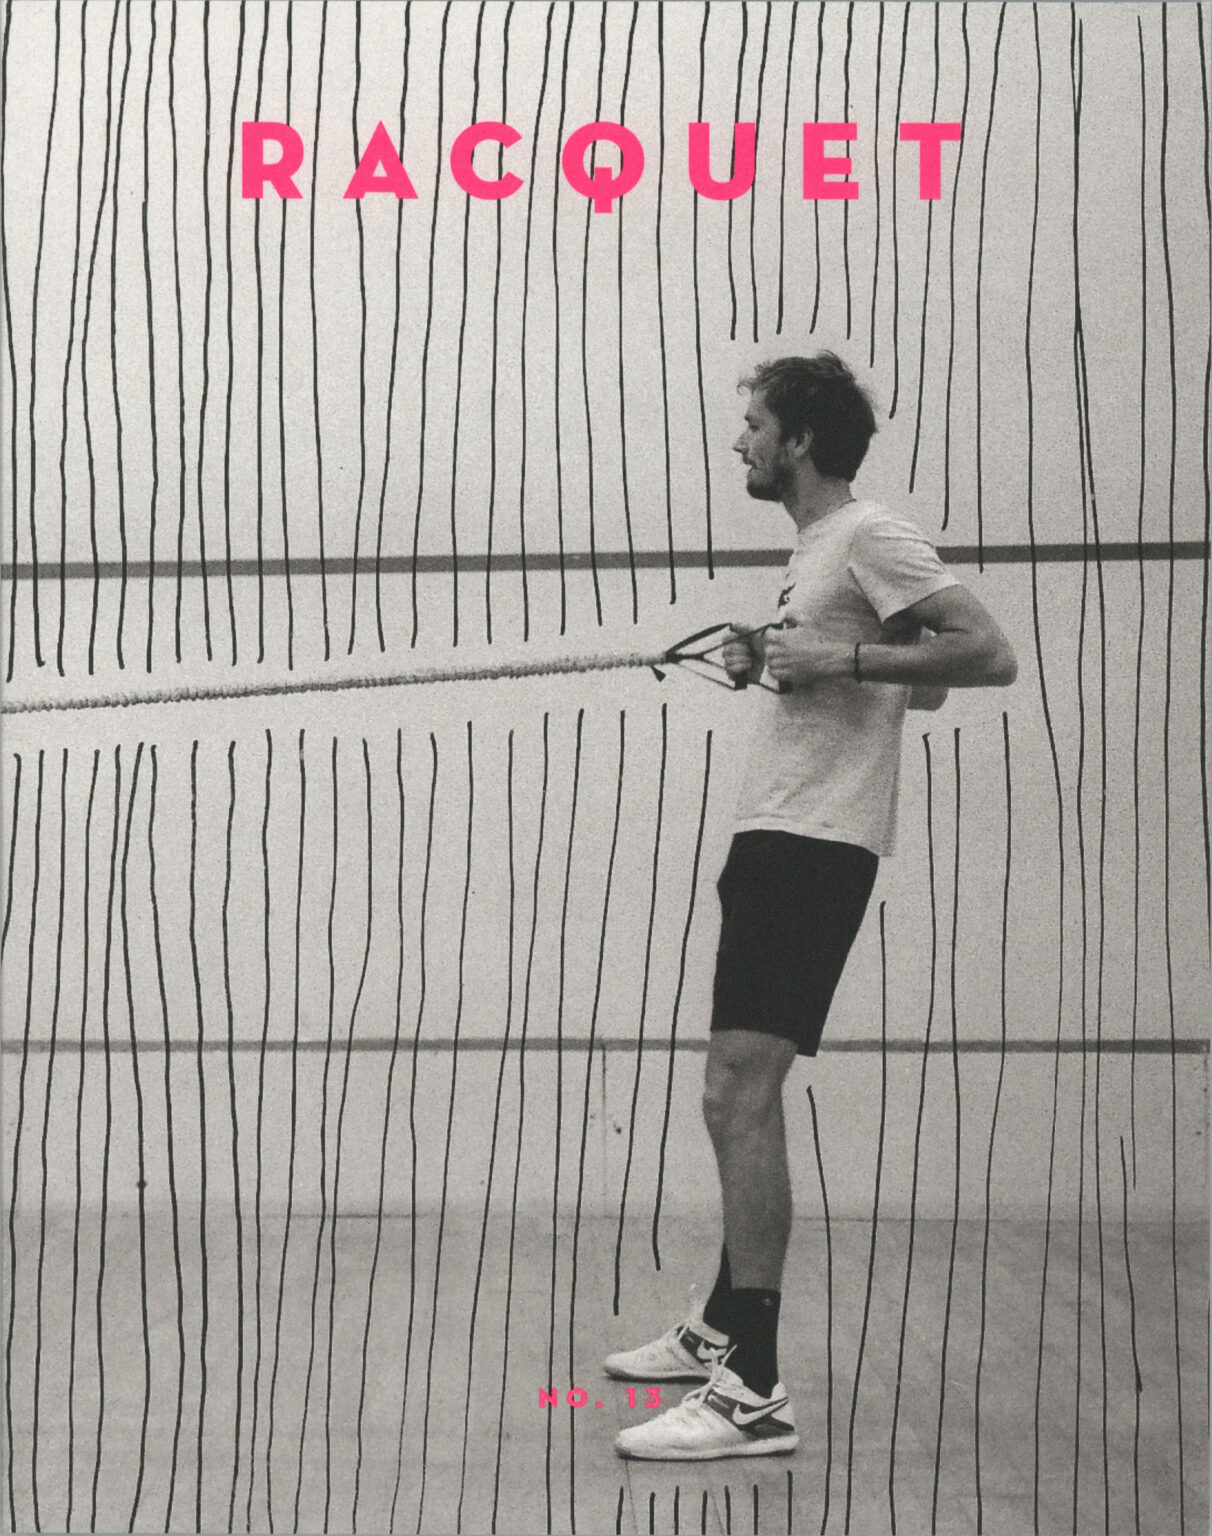 Racquet Magazine. Celebrating Tennis and the Culture Surrounding the Game.